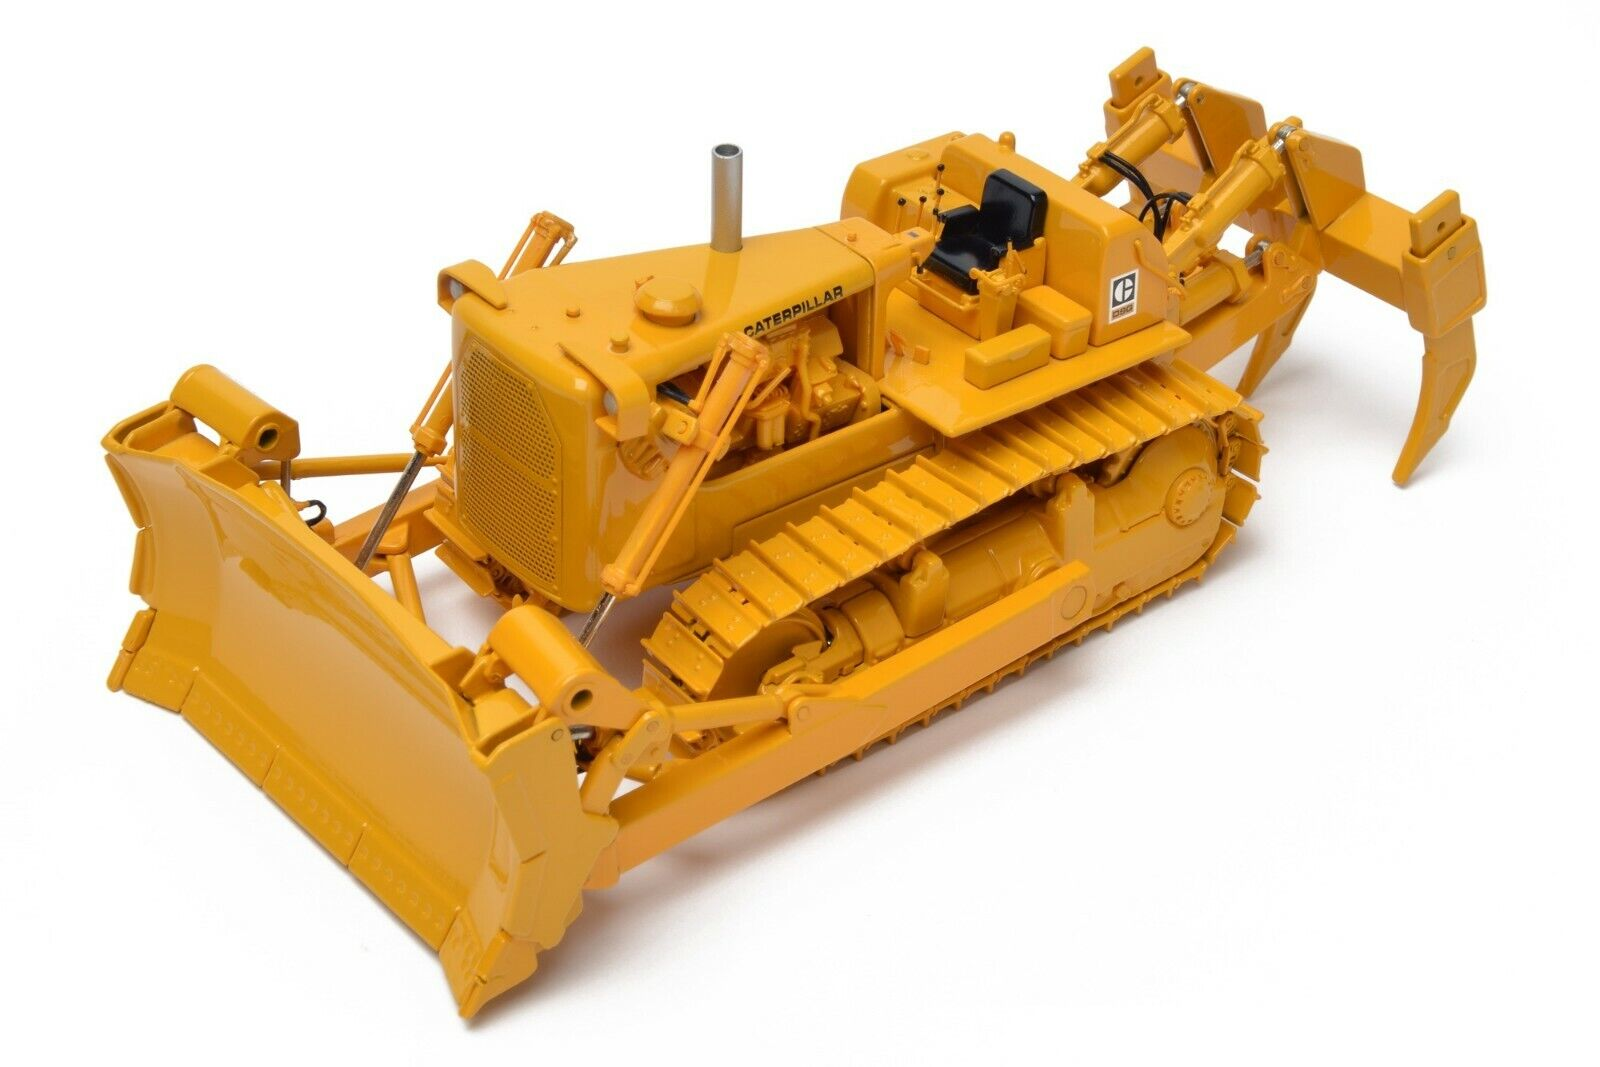 Caterpillar Cat D9G with 9R Ripper Blade by CCM 1 48 Scale Diecast Model New